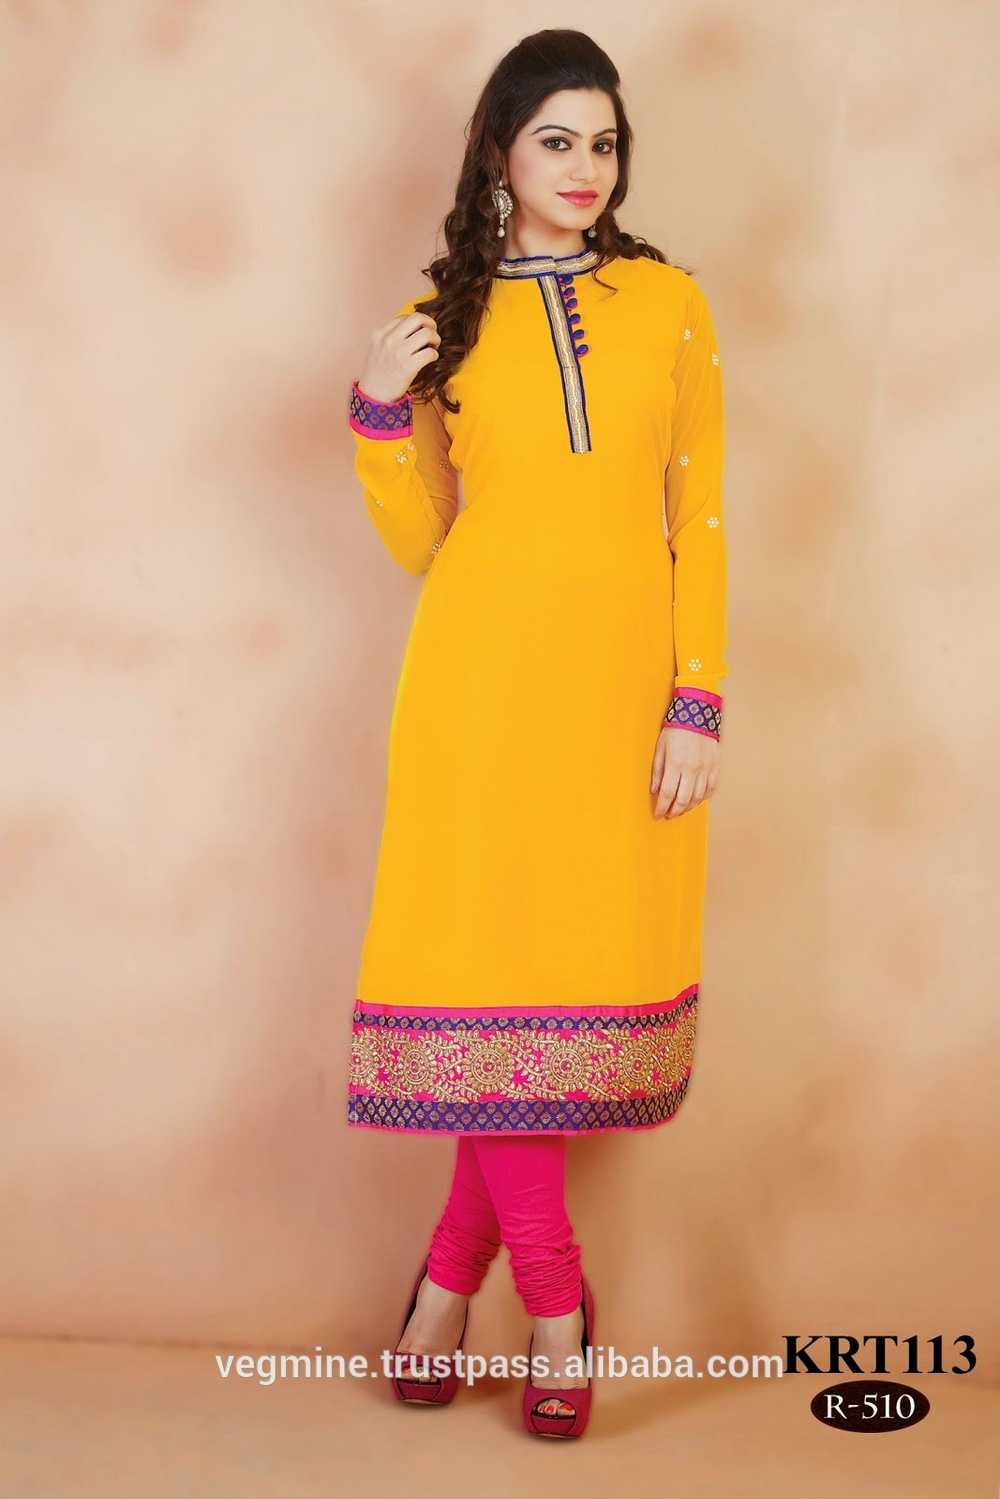 Stand Collar Designs For Kurti : Collar neck designs kurtis indian kurtis wholesale buy